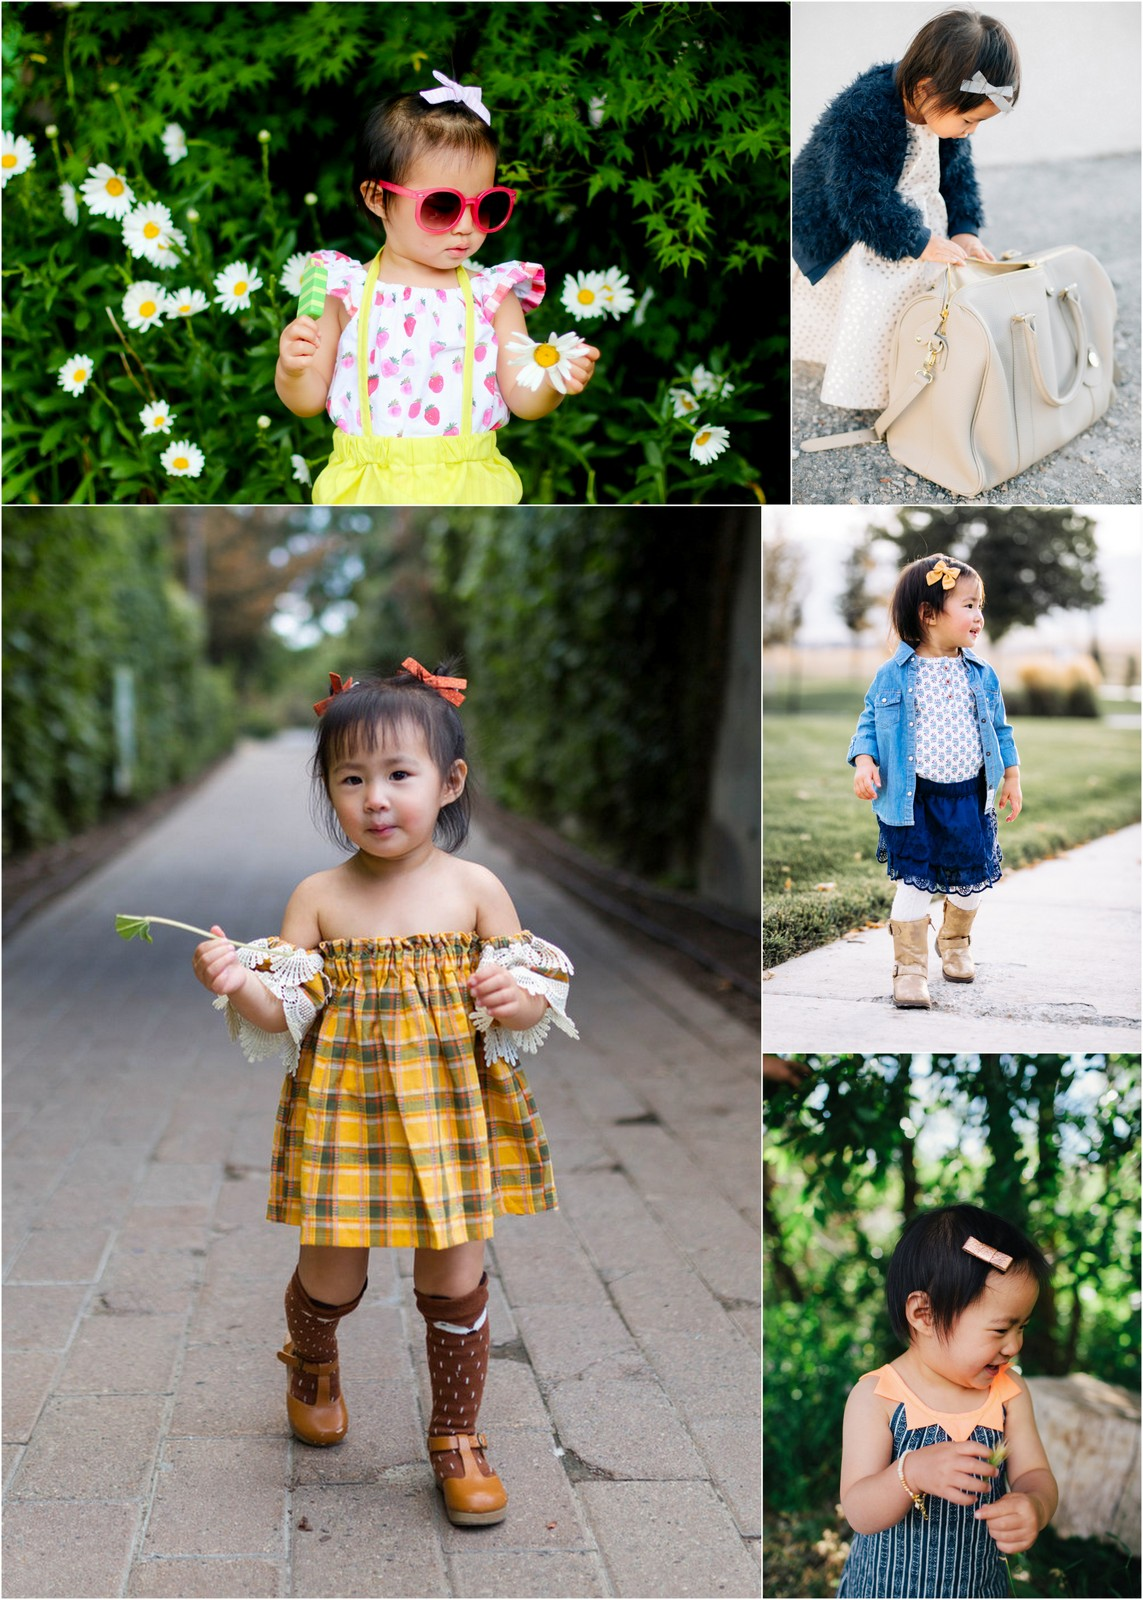 girl air accessories: clips and pigtails